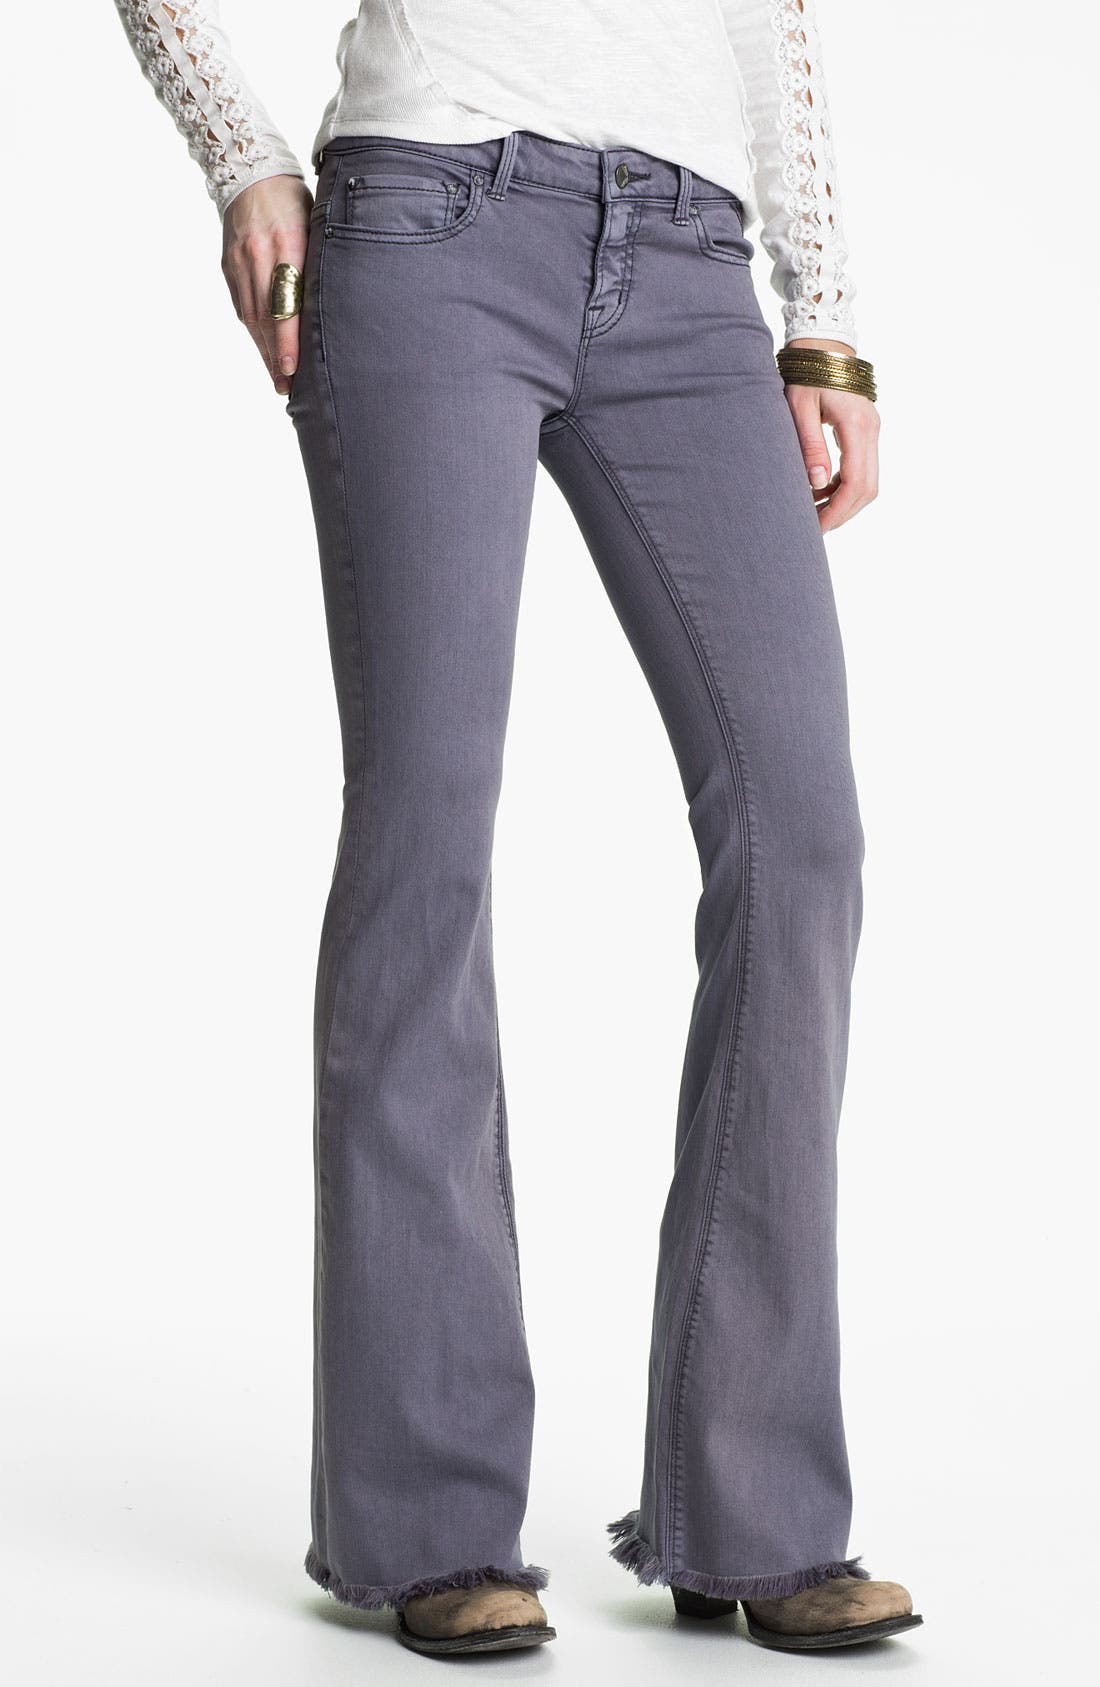 Main Image - Free People 'Millennium' Colored Denim Bootcut Jeans (Violet)